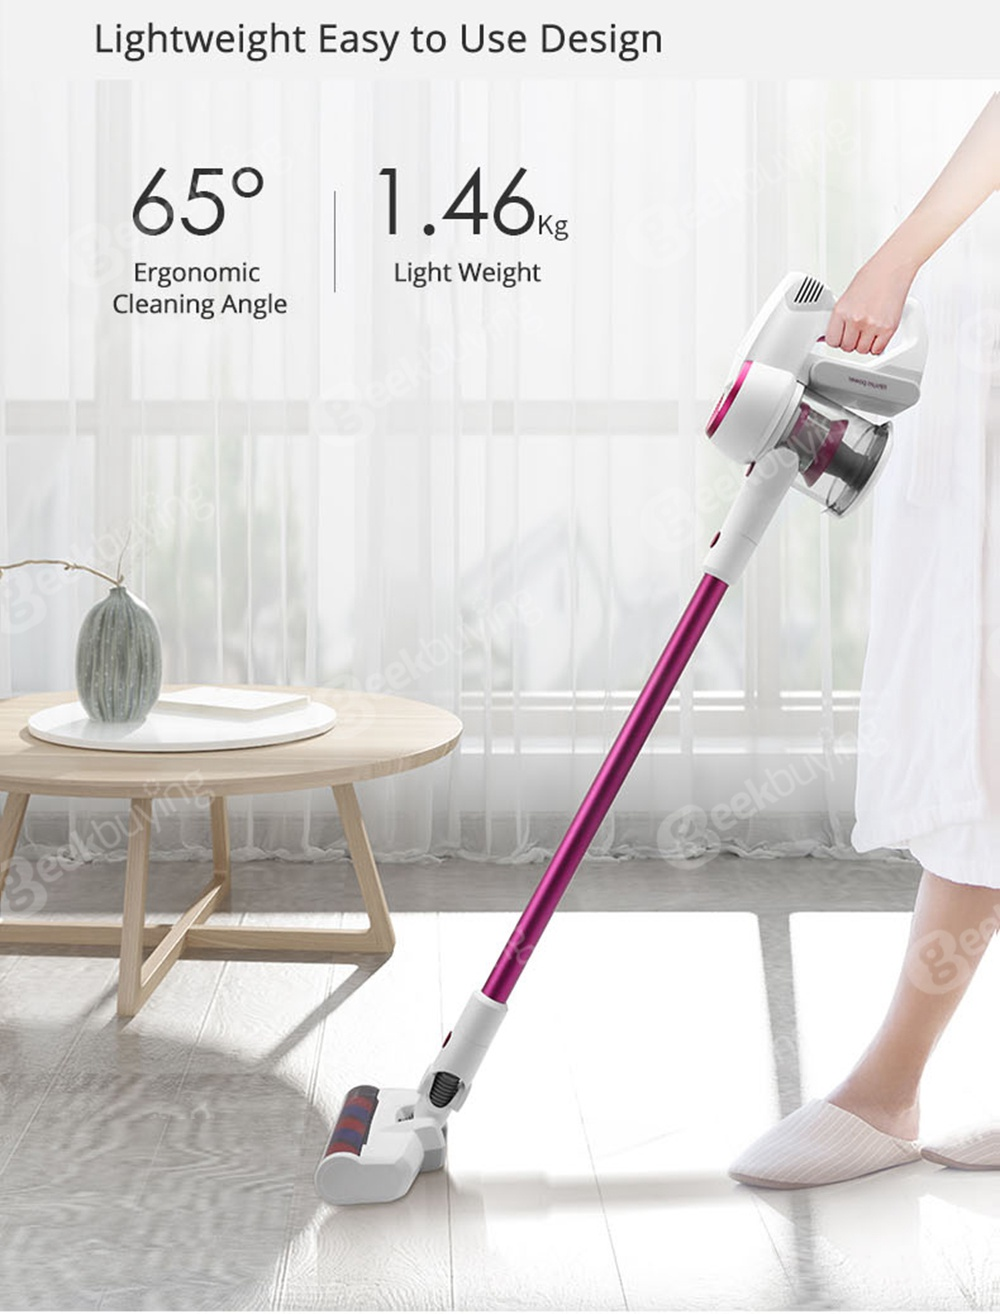 Xiaomi JIMMY JV53 Handheld Cordless Vacuum Cleaner 125AW Powerful Suction High-efficiency Motor Anti-wrapped Brush - Purple